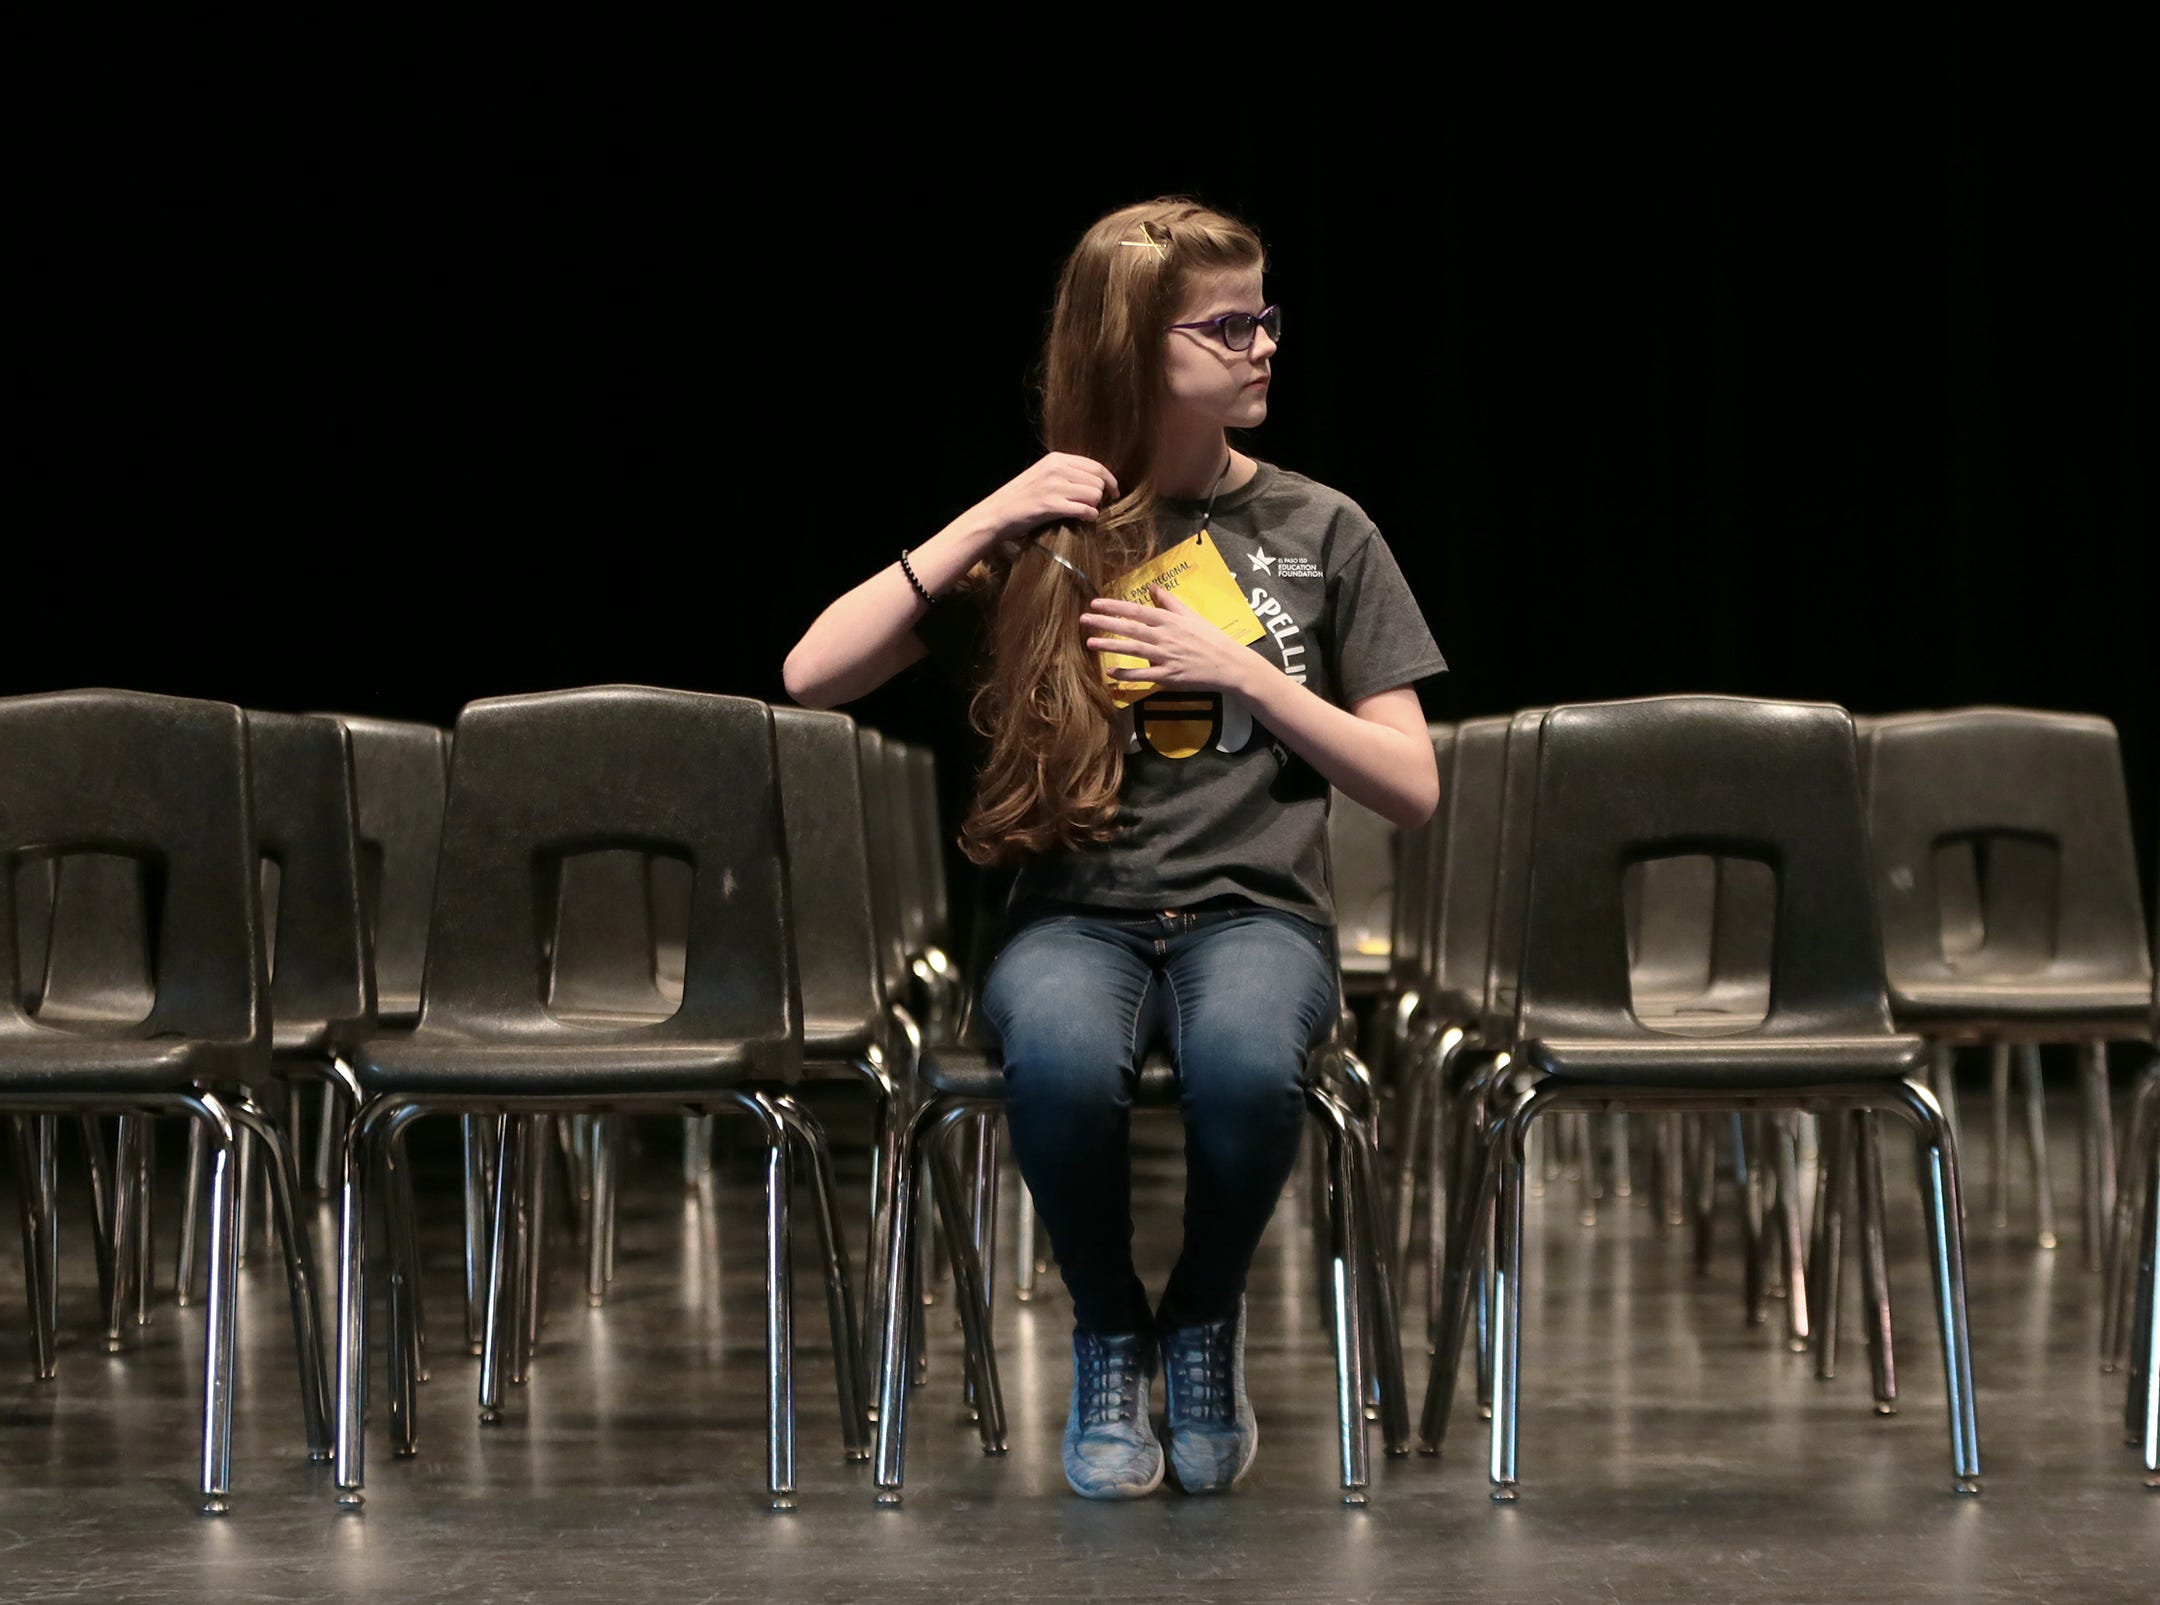 Alexia Whetten of Canutillo Middle School waits for round 2 to begin at the 2019 El Paso Regional Spelling Bee Friday at Bowie High School.